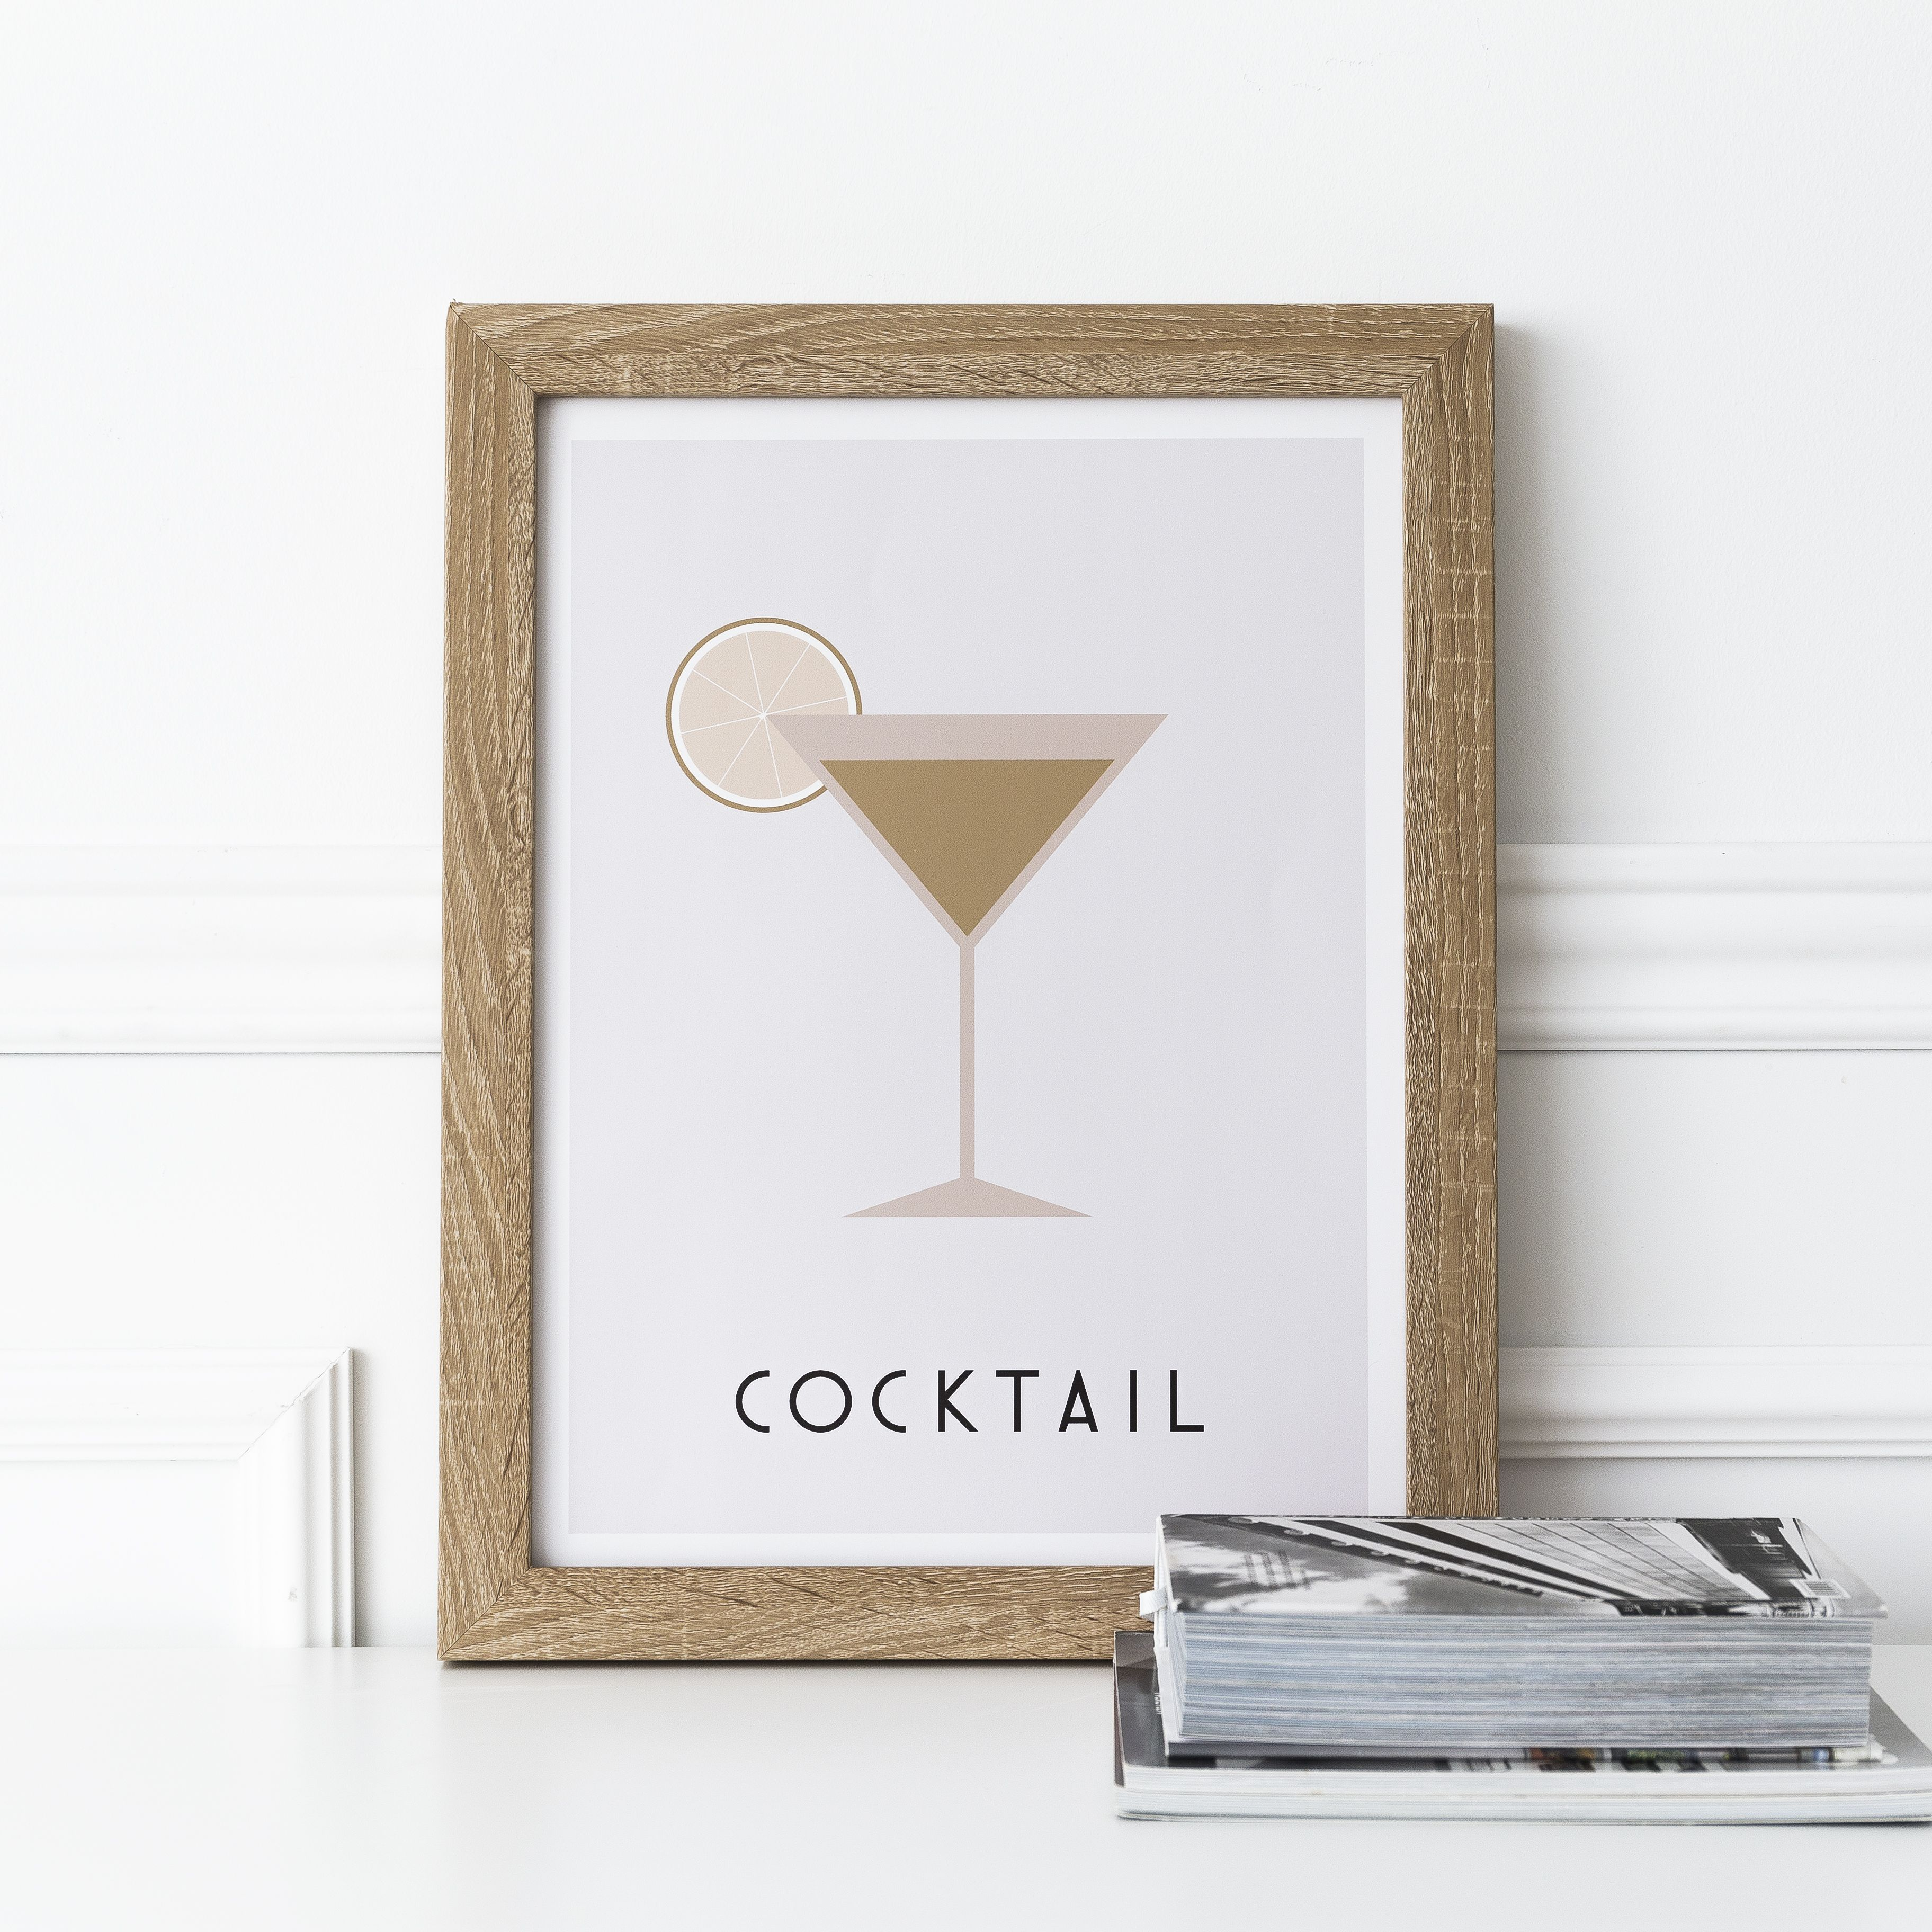 Cocktail láminaA3